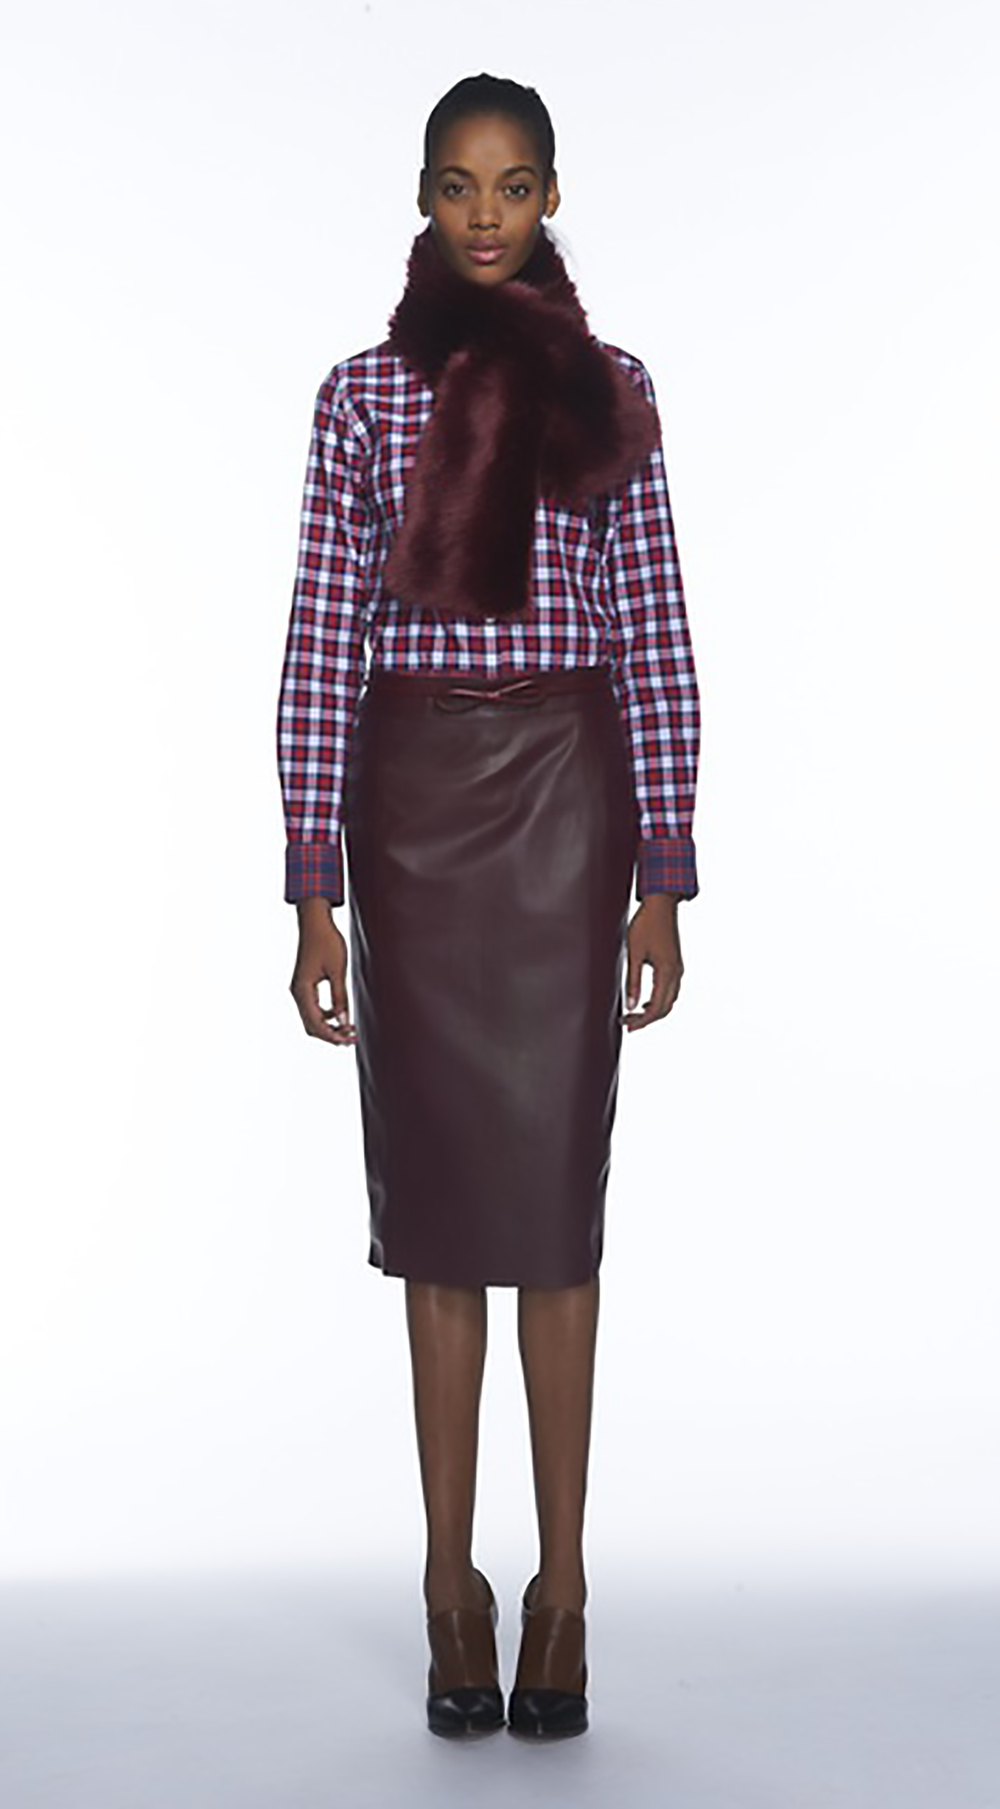 style.com banana republic rtw fall '13 look 27 plaid 1500.jpg